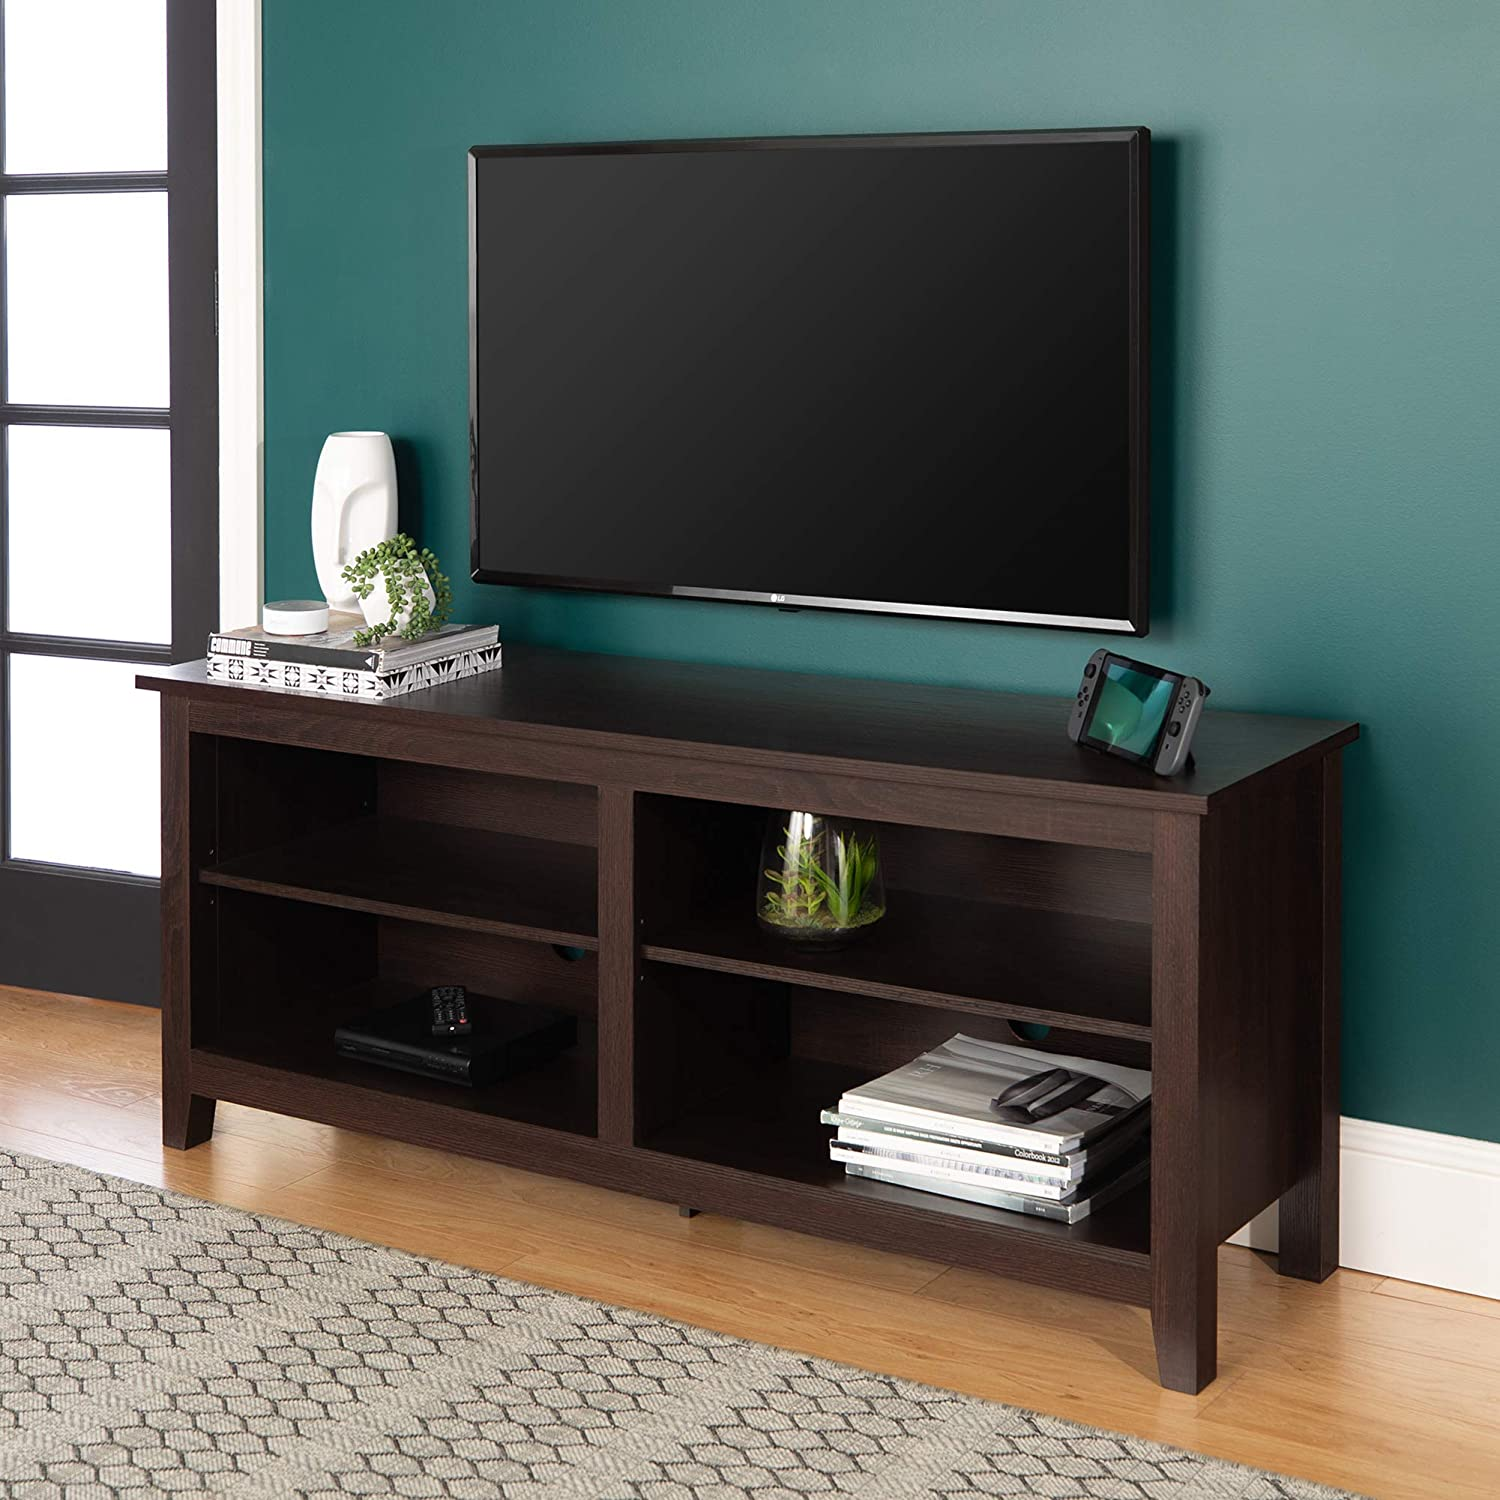 Amazon Com Walker Edison Wren Classic 4 Cubby Tv Stand For Tvs Up To 65 Inches 58 Inch Espresso Furniture Decor